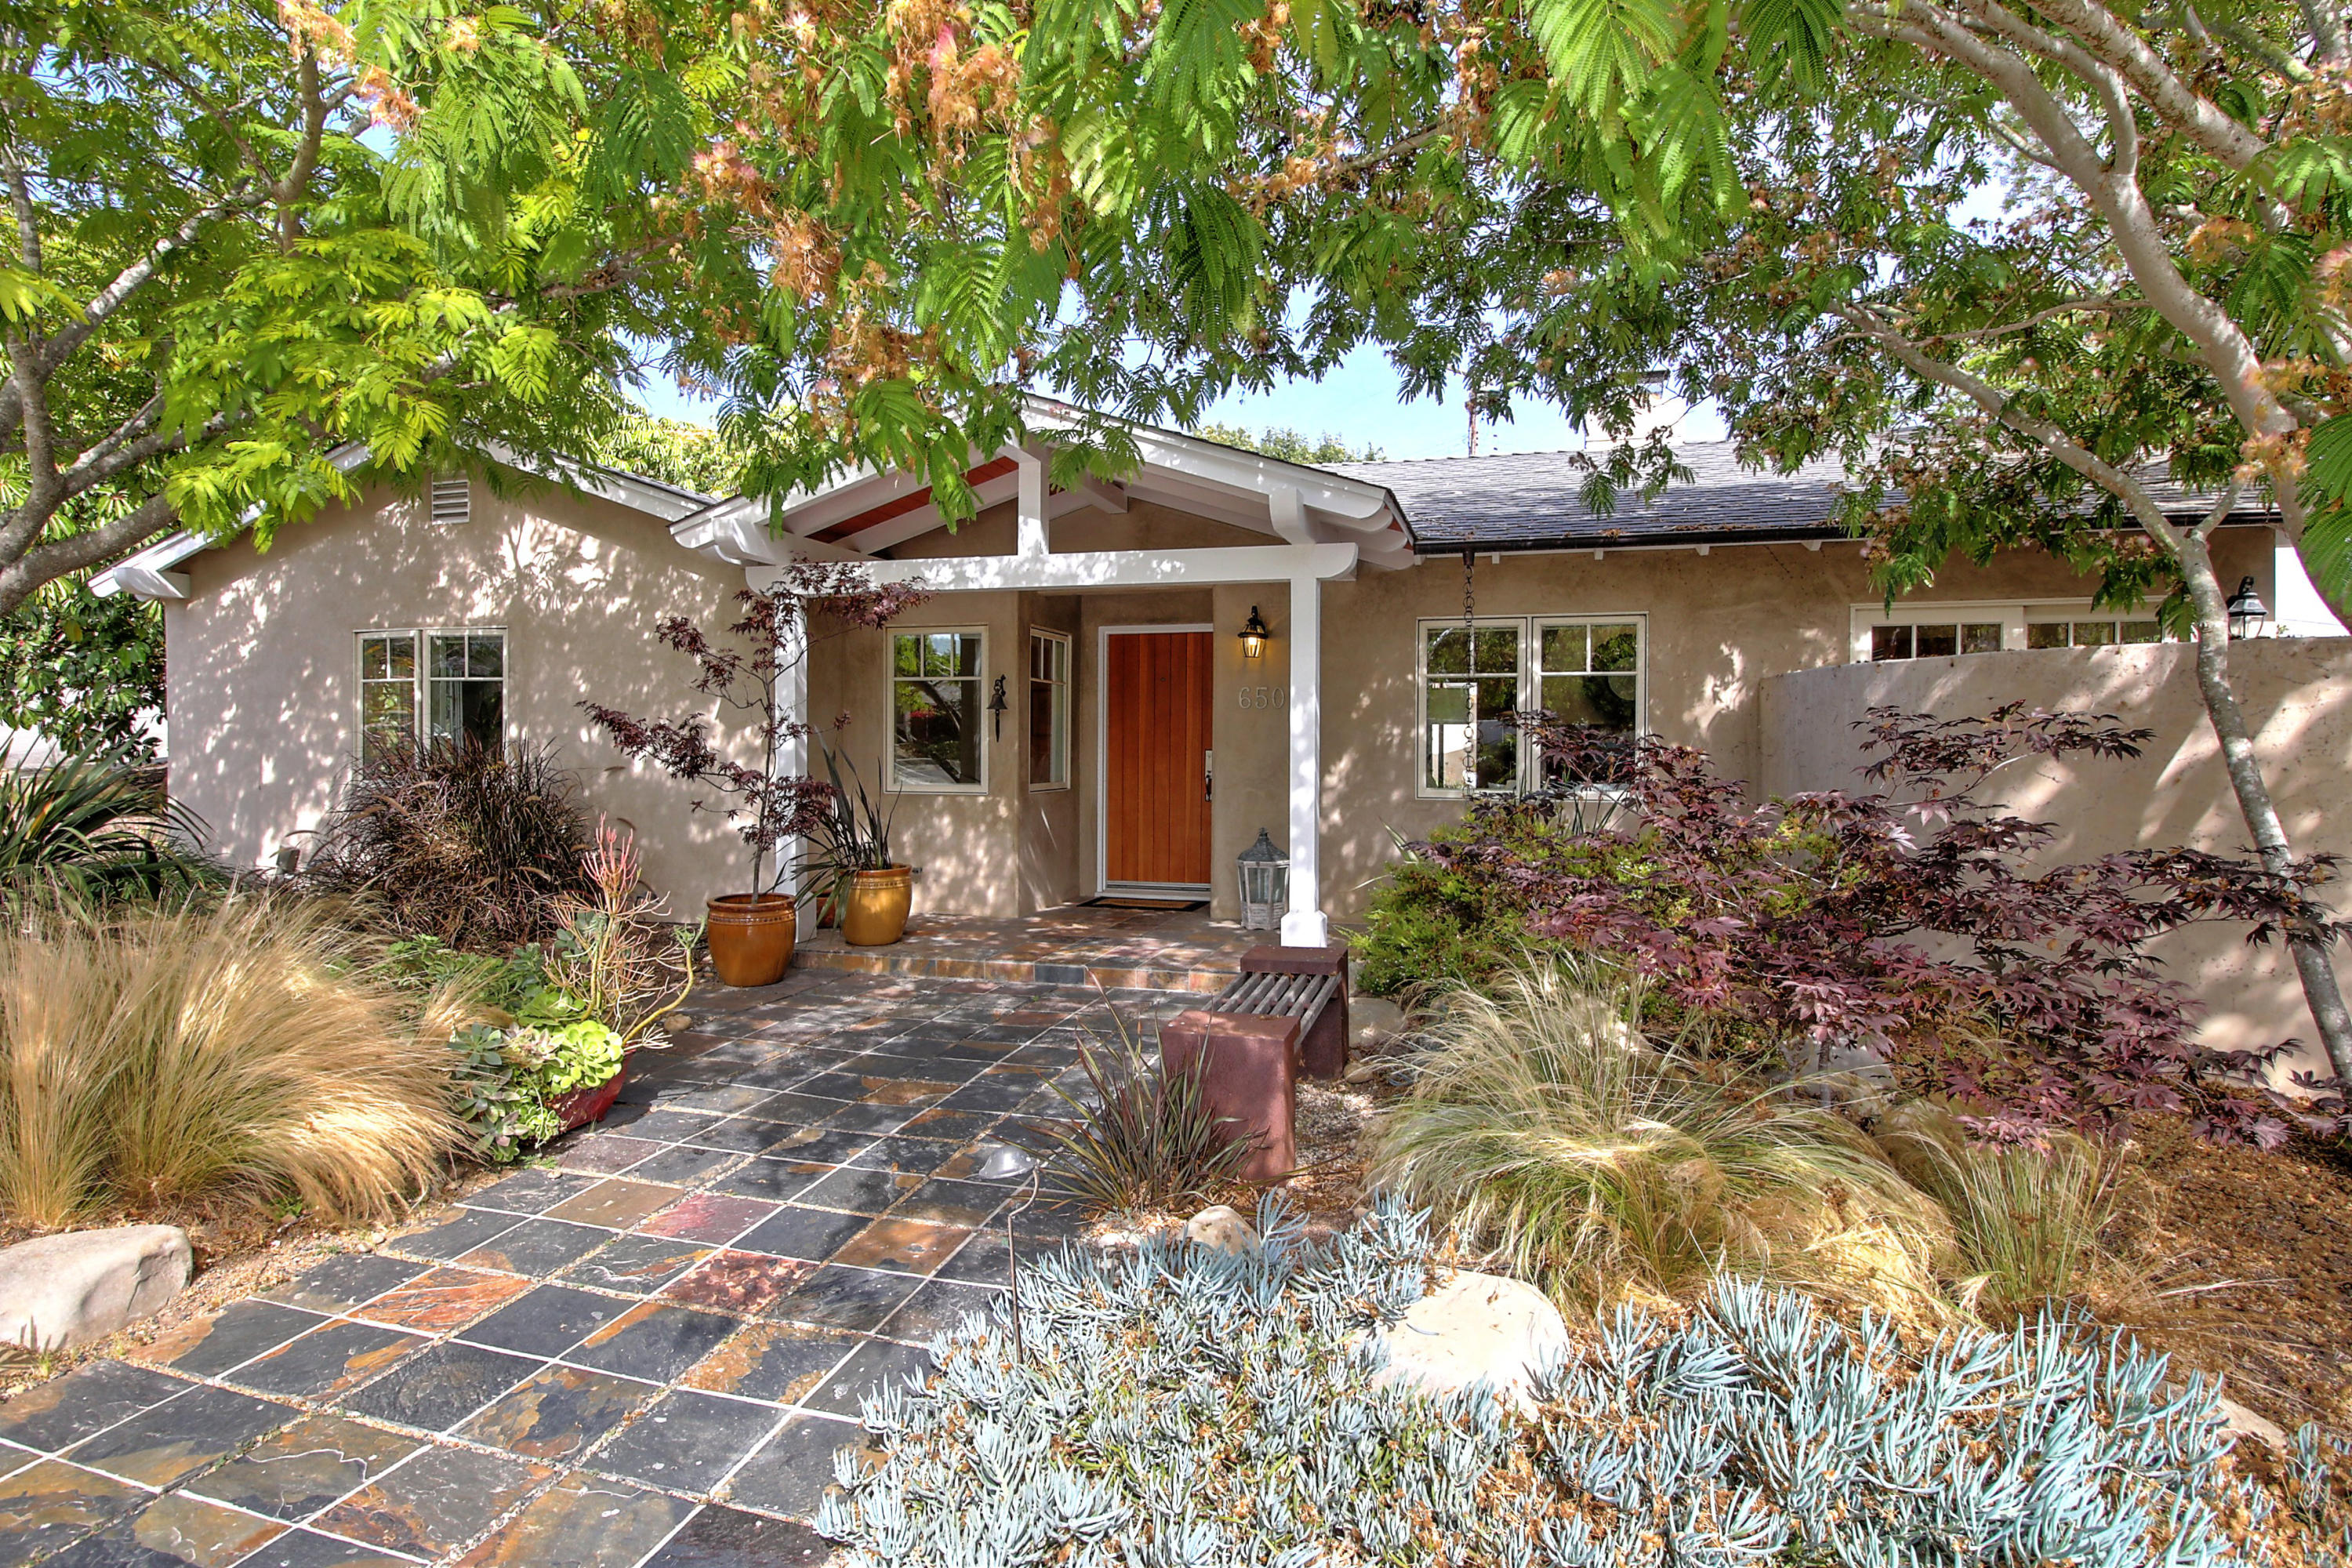 Property photo for 650 Juanita Ave Santa Barbara, California 93109 - 16-2365